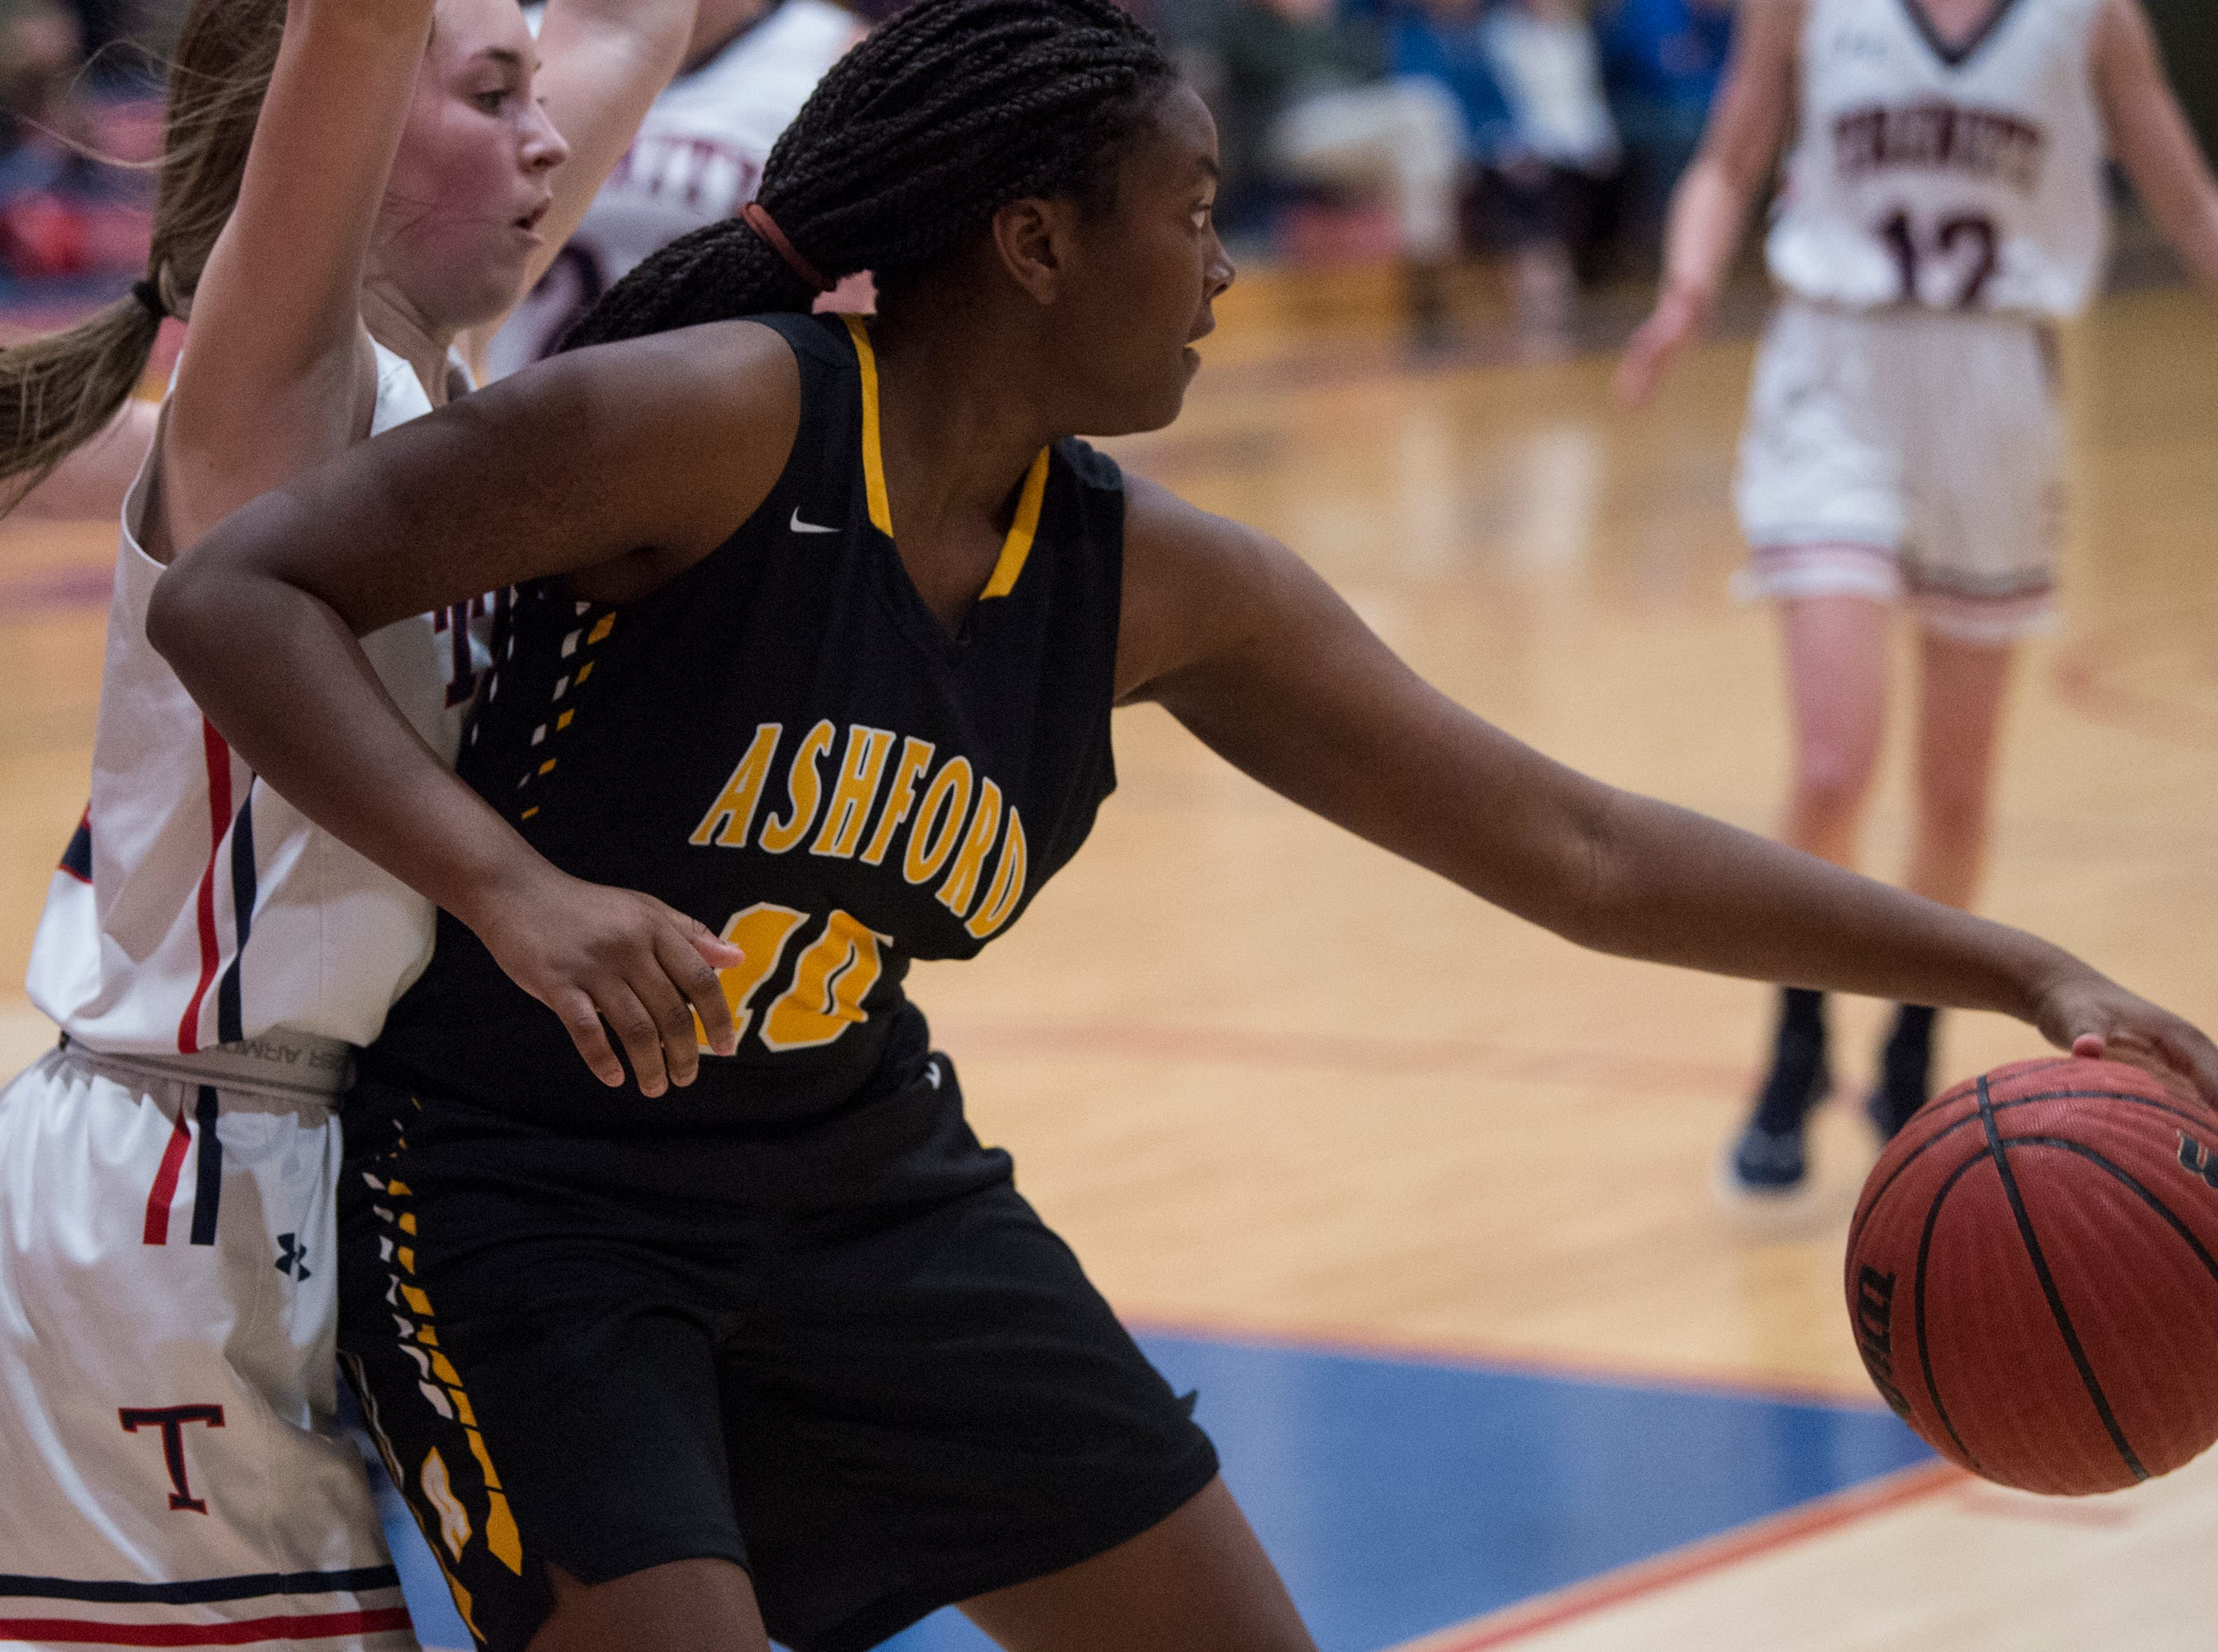 Ashford's Nevaeh Williams (10) dribbles the ball in the post during the Class 4A subregional at Trinity Presbyterian High School in Montgomery, Ala., on Monday, Feb. 11, 2019. Trinity defeated Ashford 66-28.